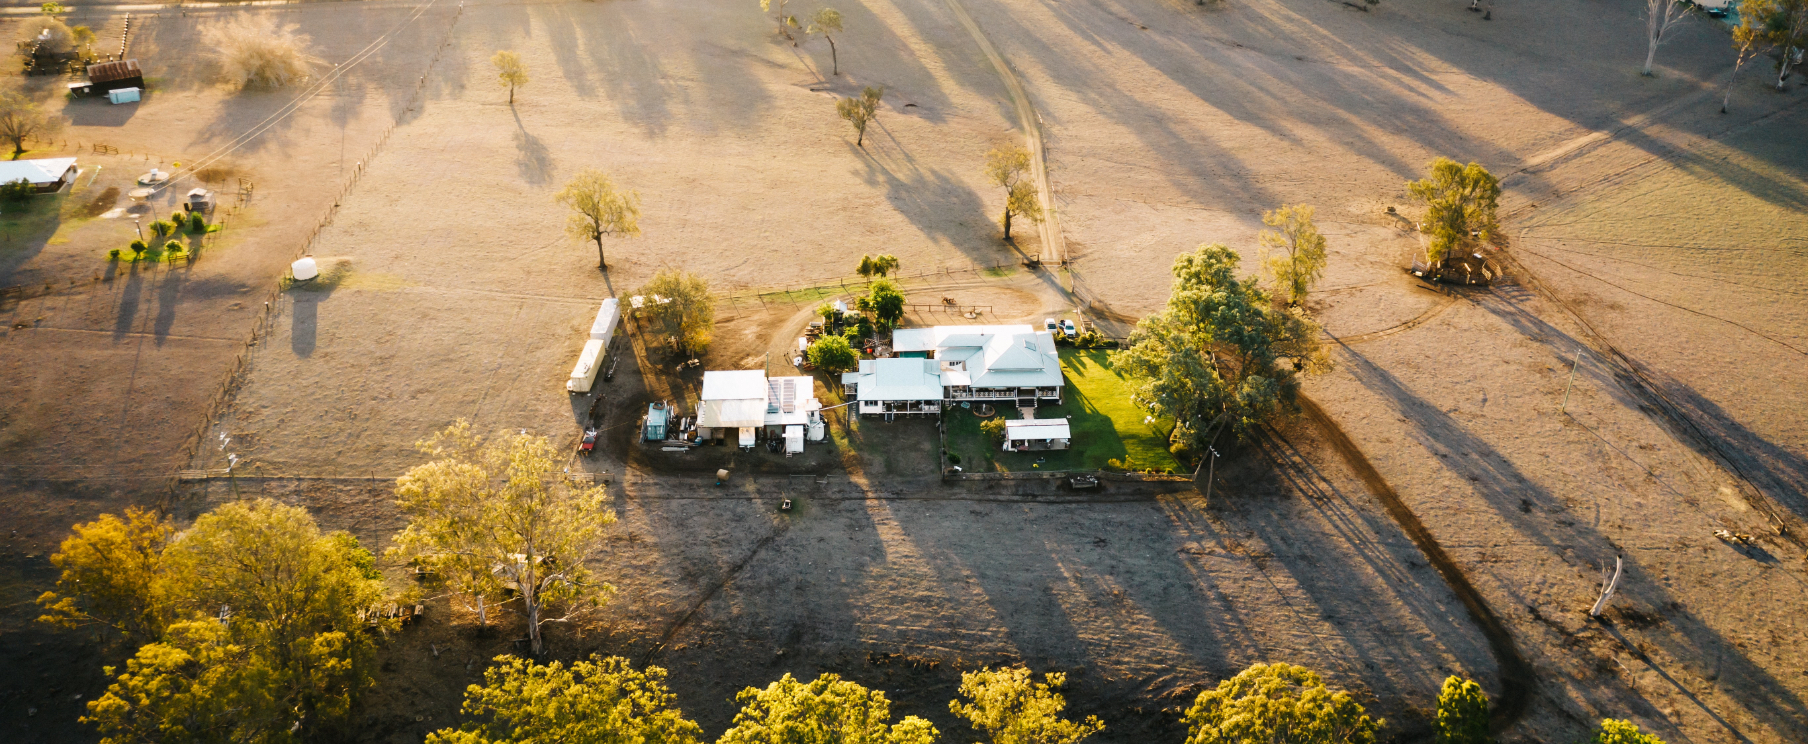 Drone image of house on farm land